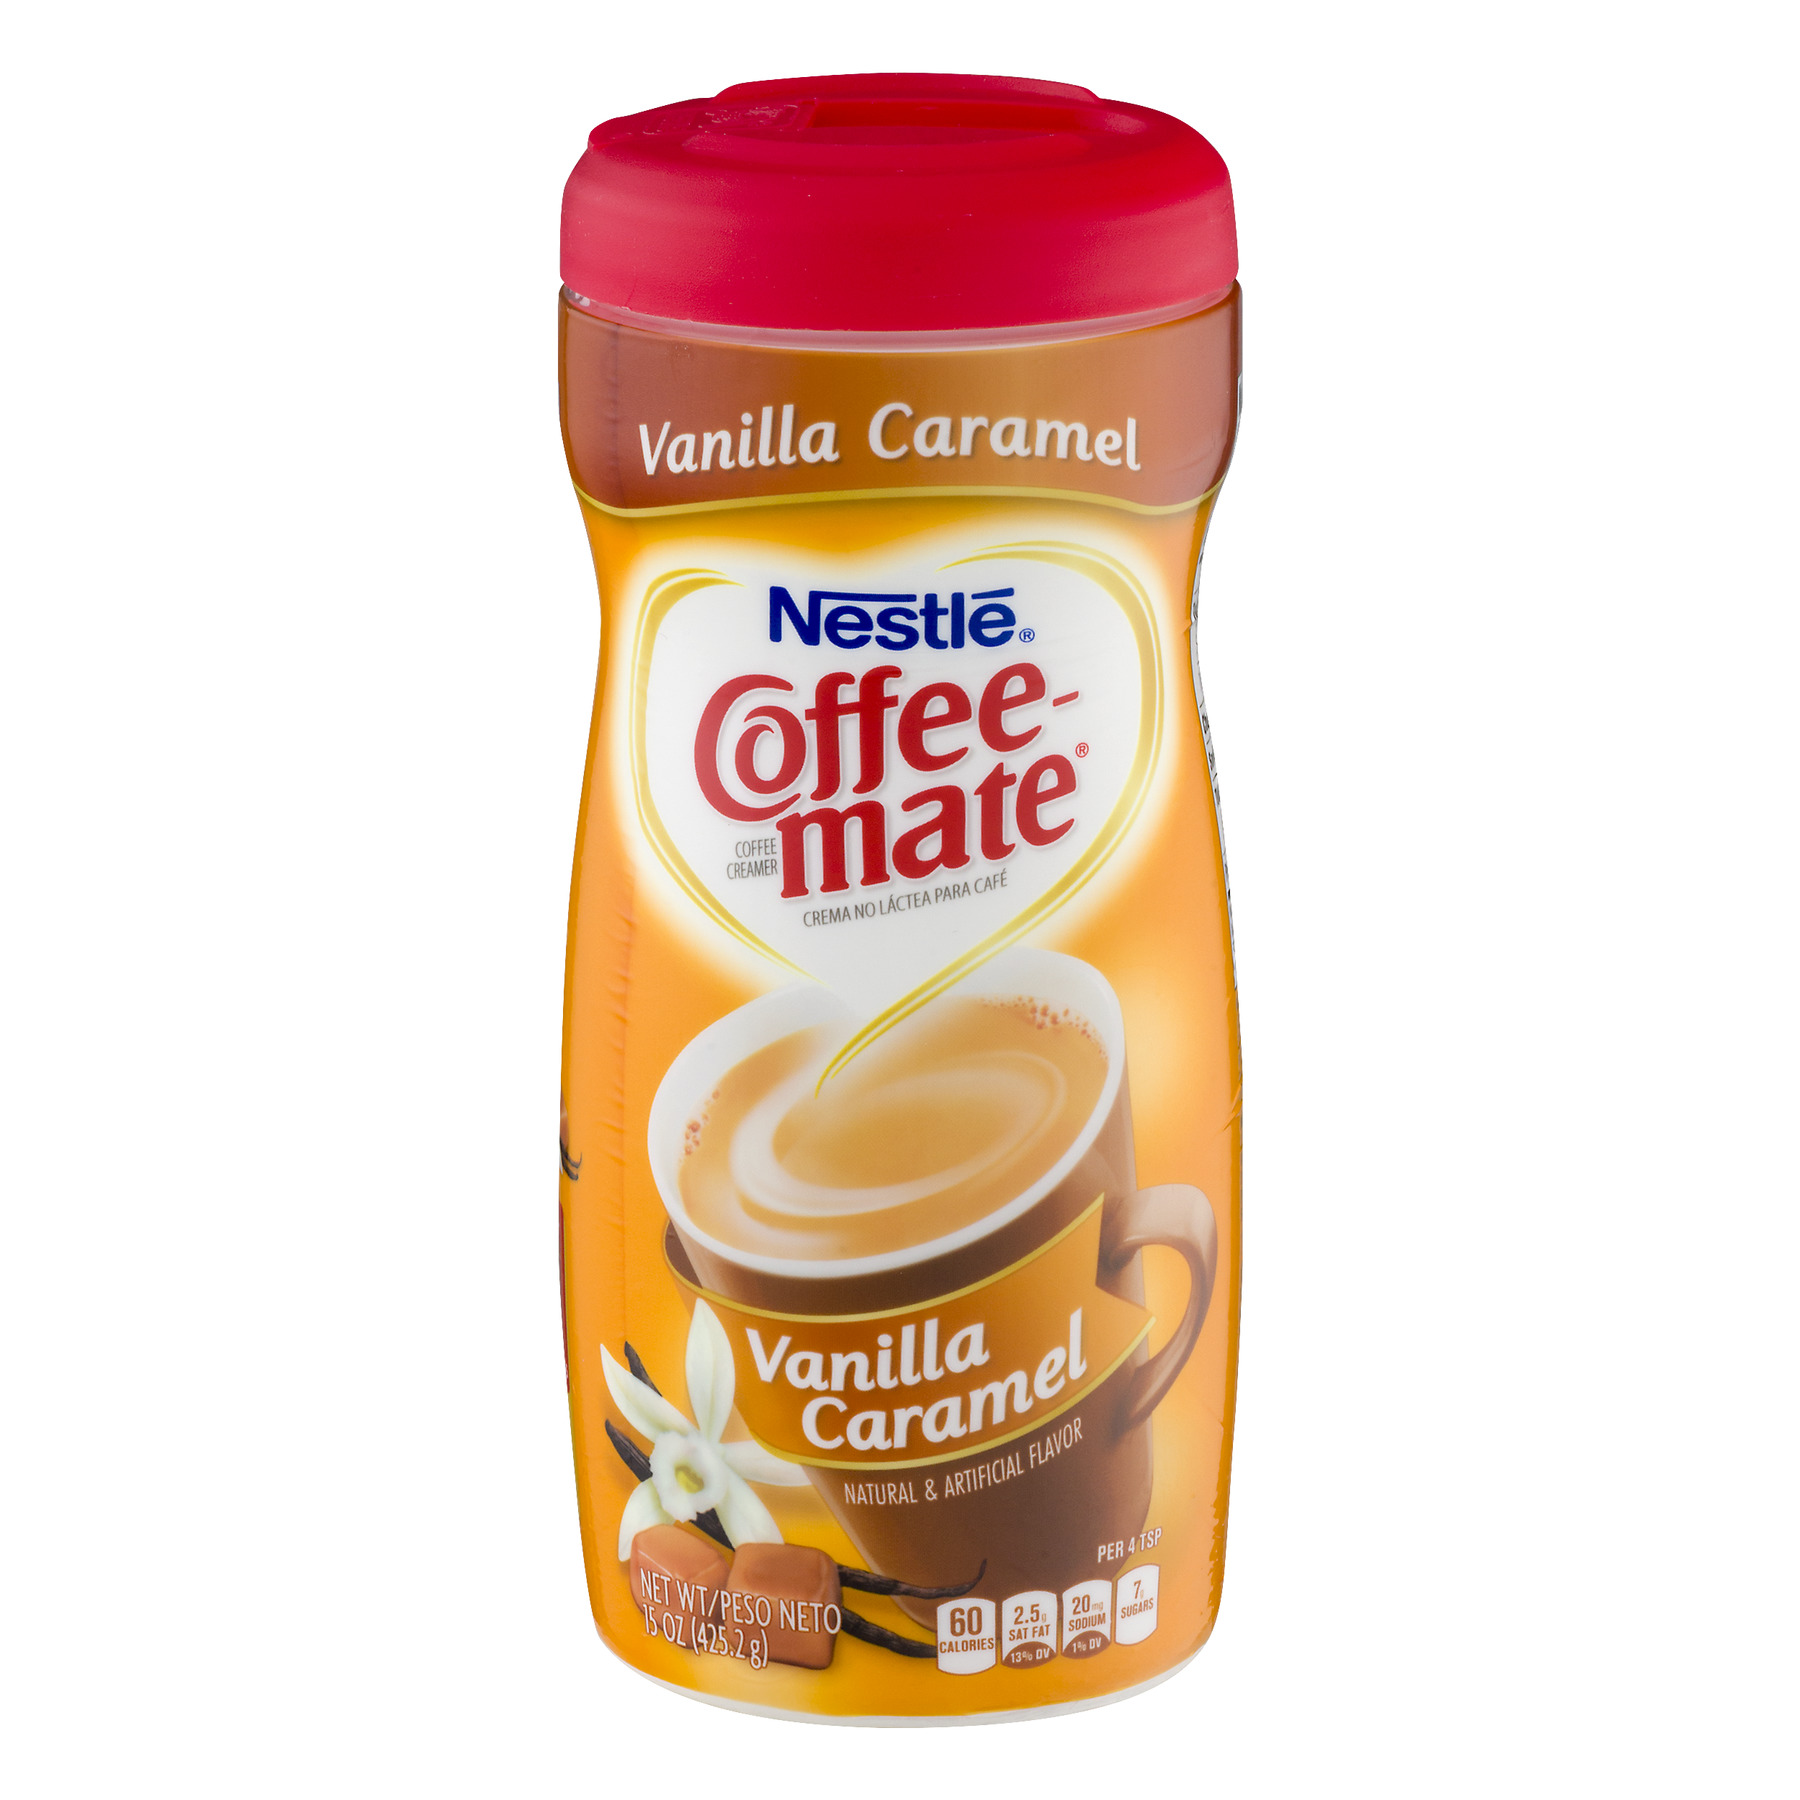 Nestle Coffeemate Vanilla Caramel Powder Coffee Creamer 15 oz. Canister